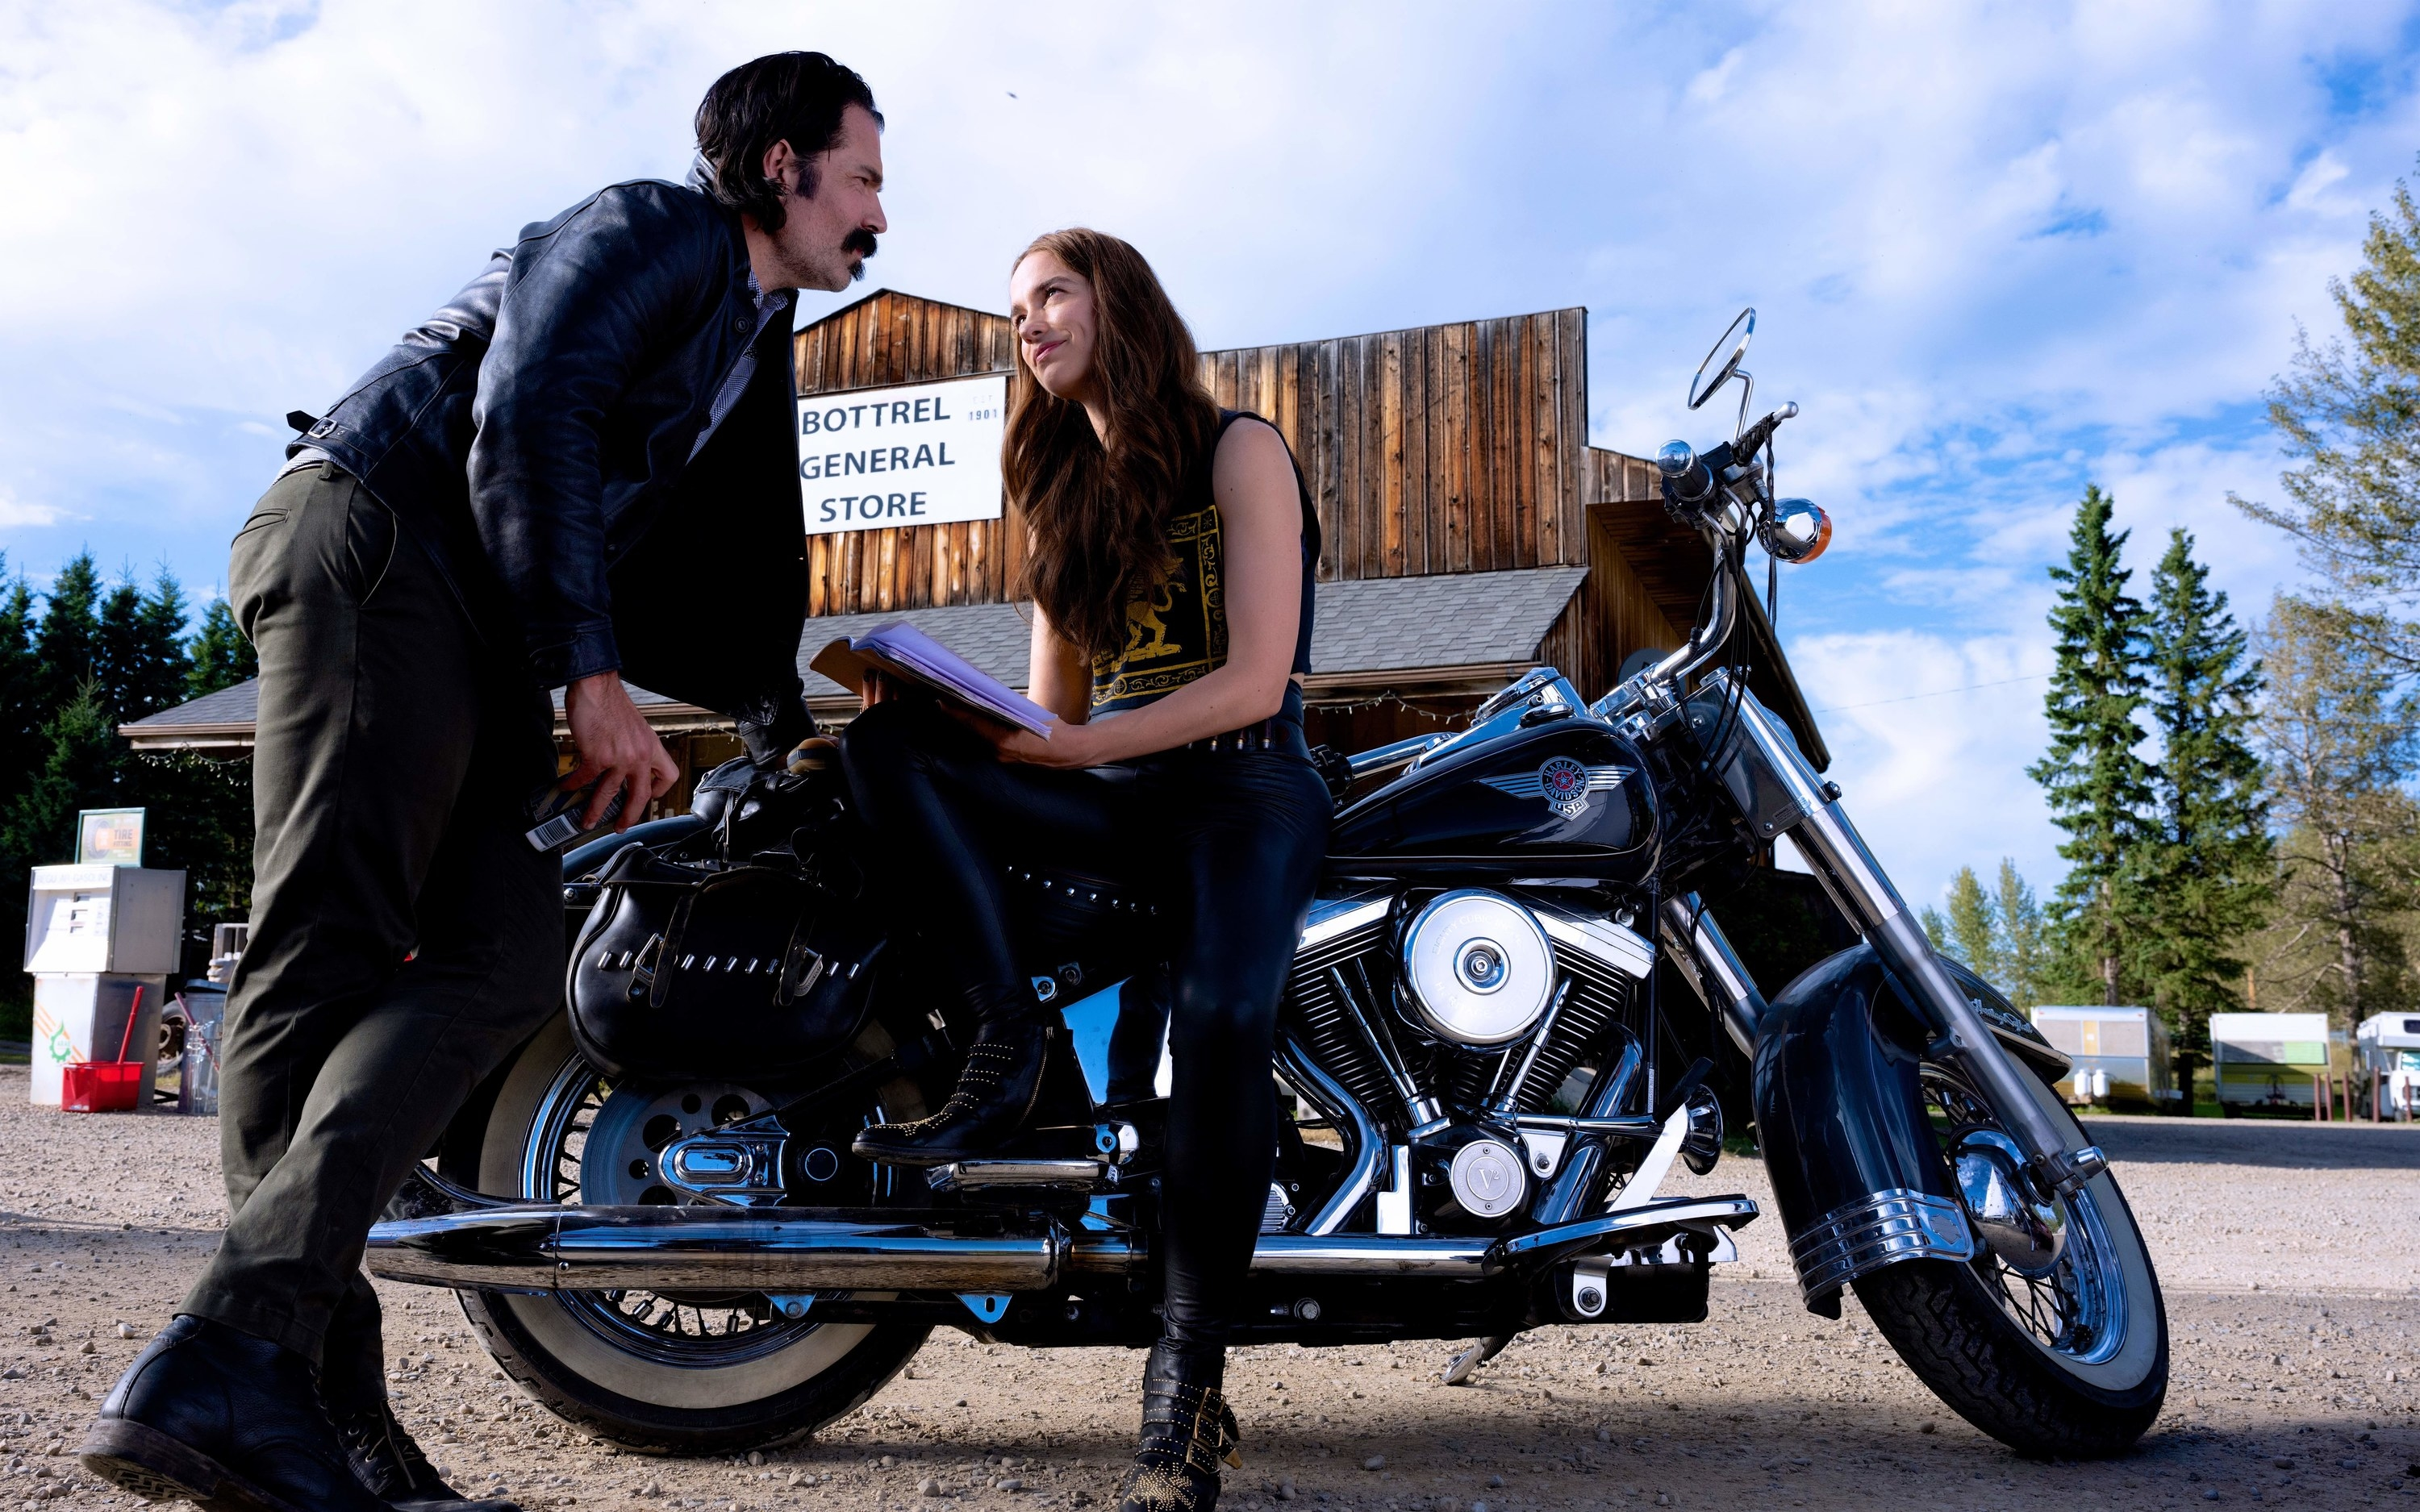 Doc and Wynonna talking while Wynonna sits on her motorcycle